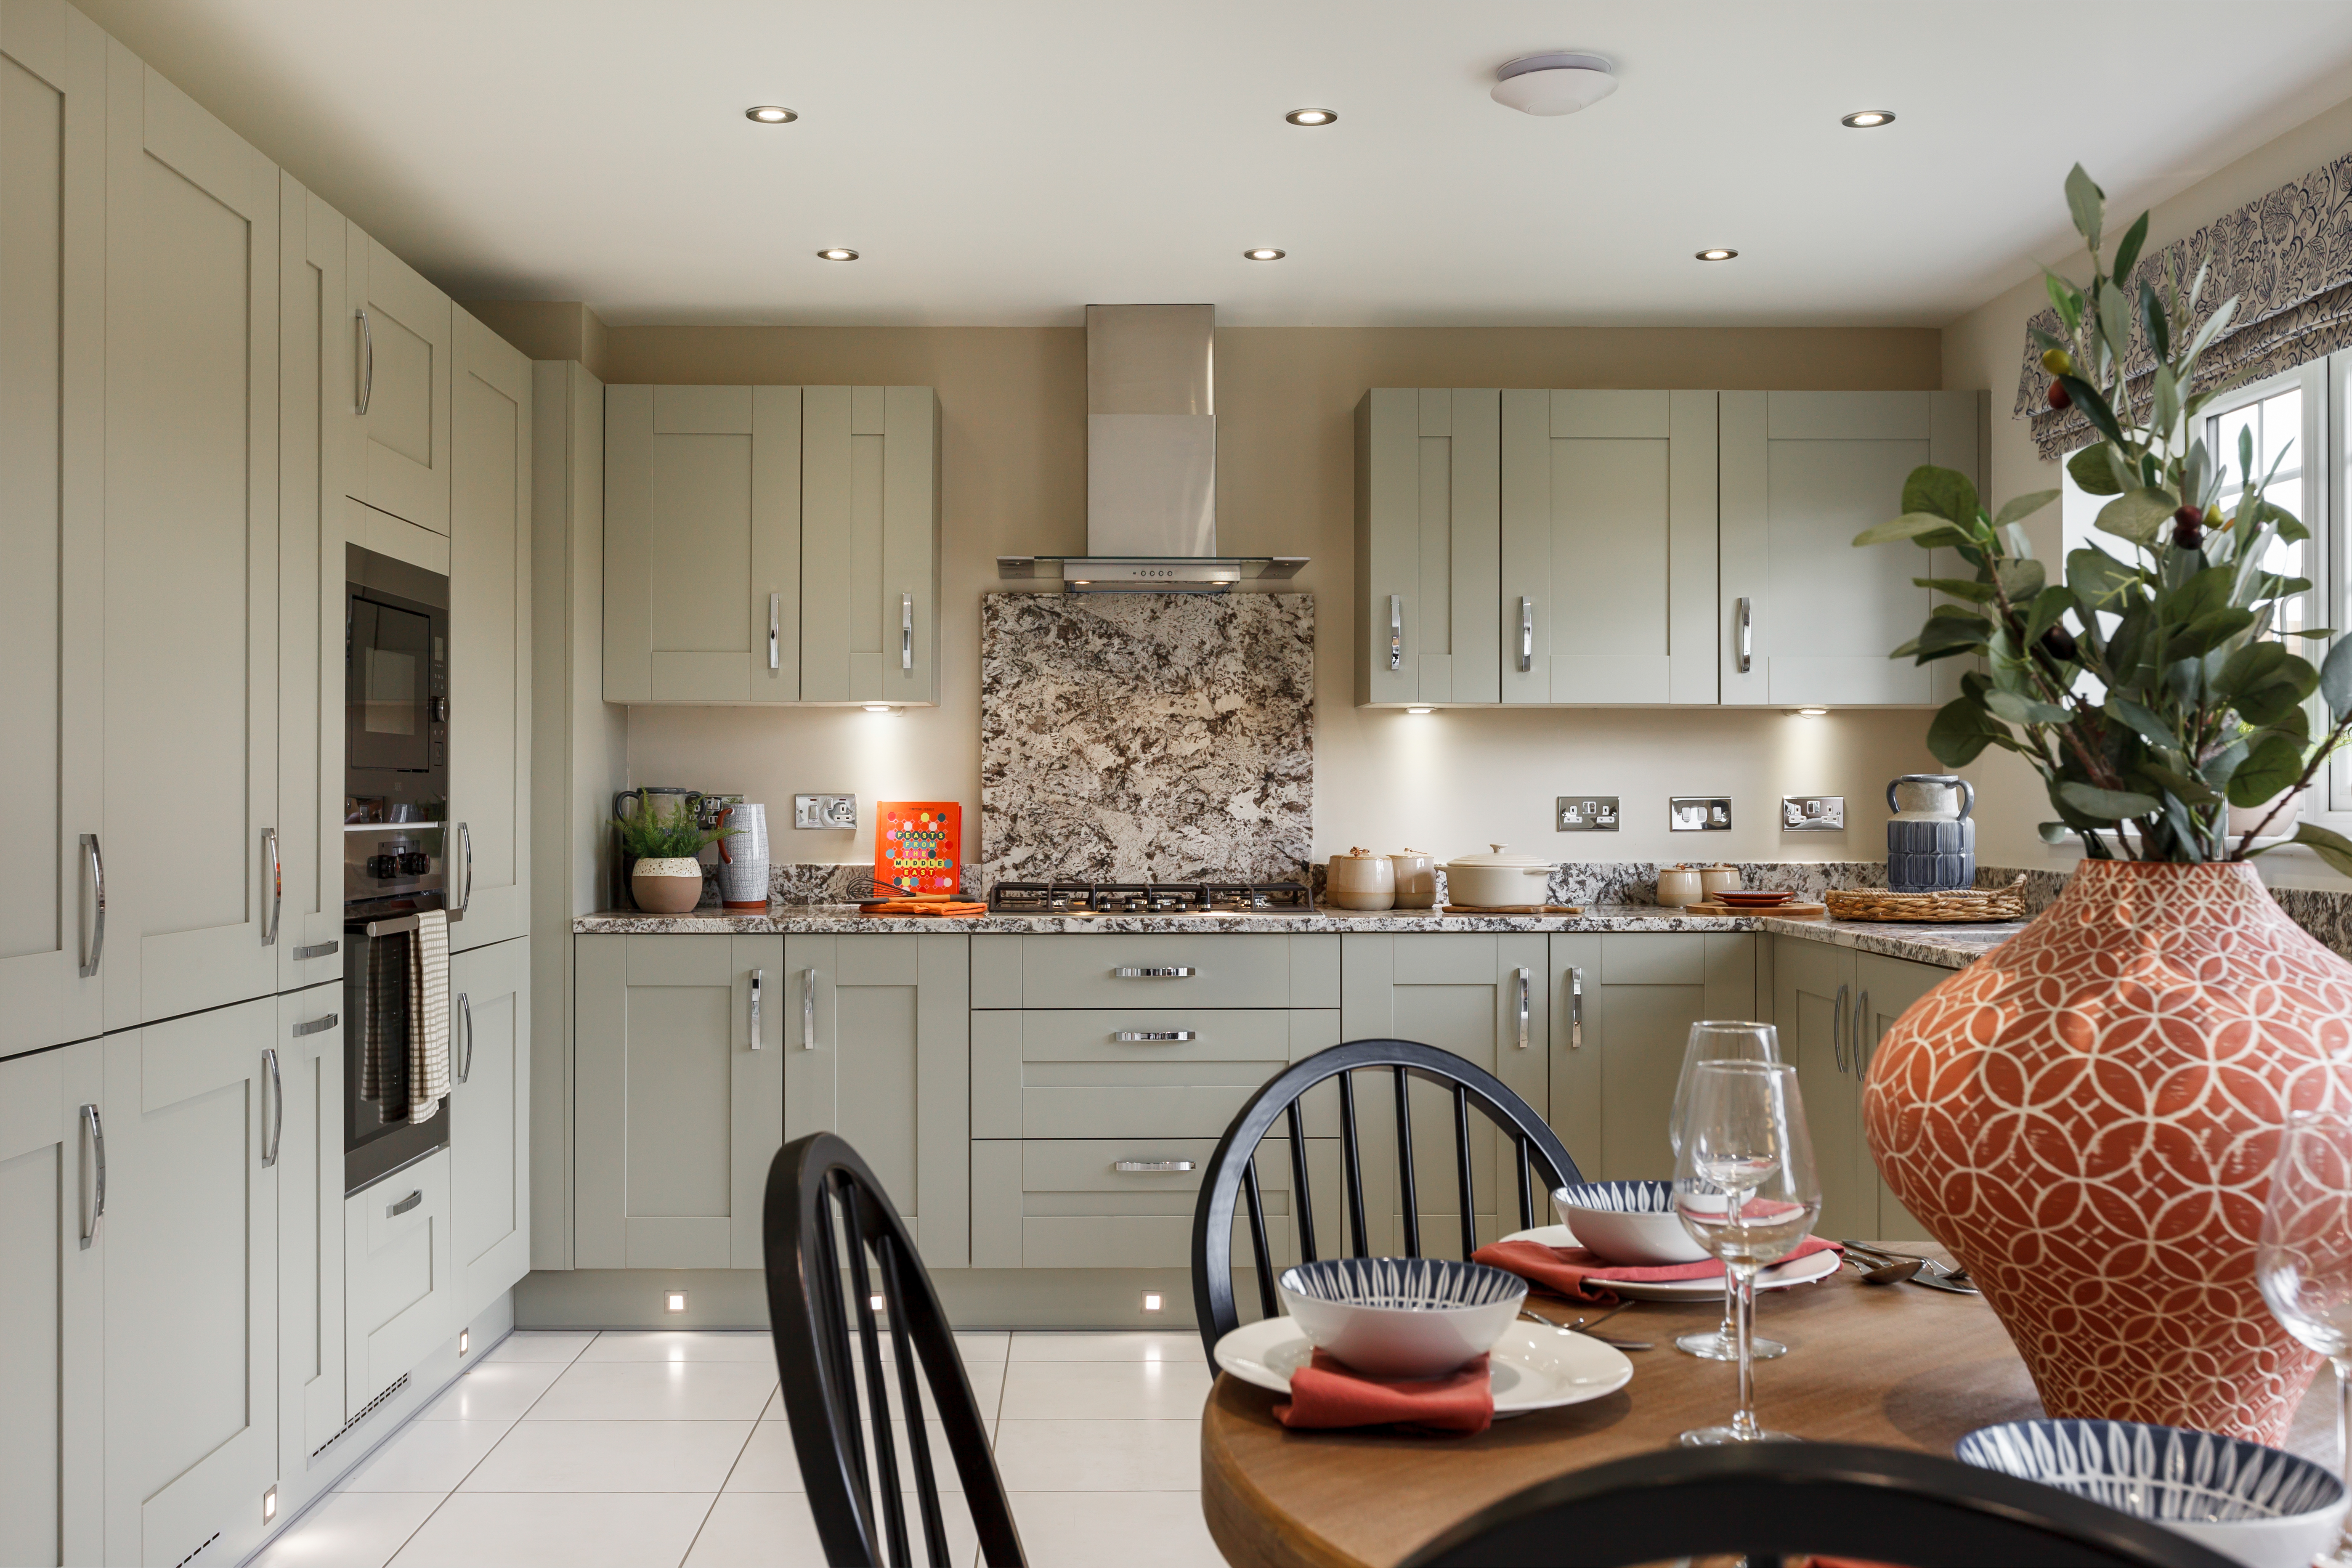 TW NY_Lime Gardens_Haddenham_Kitchen 1